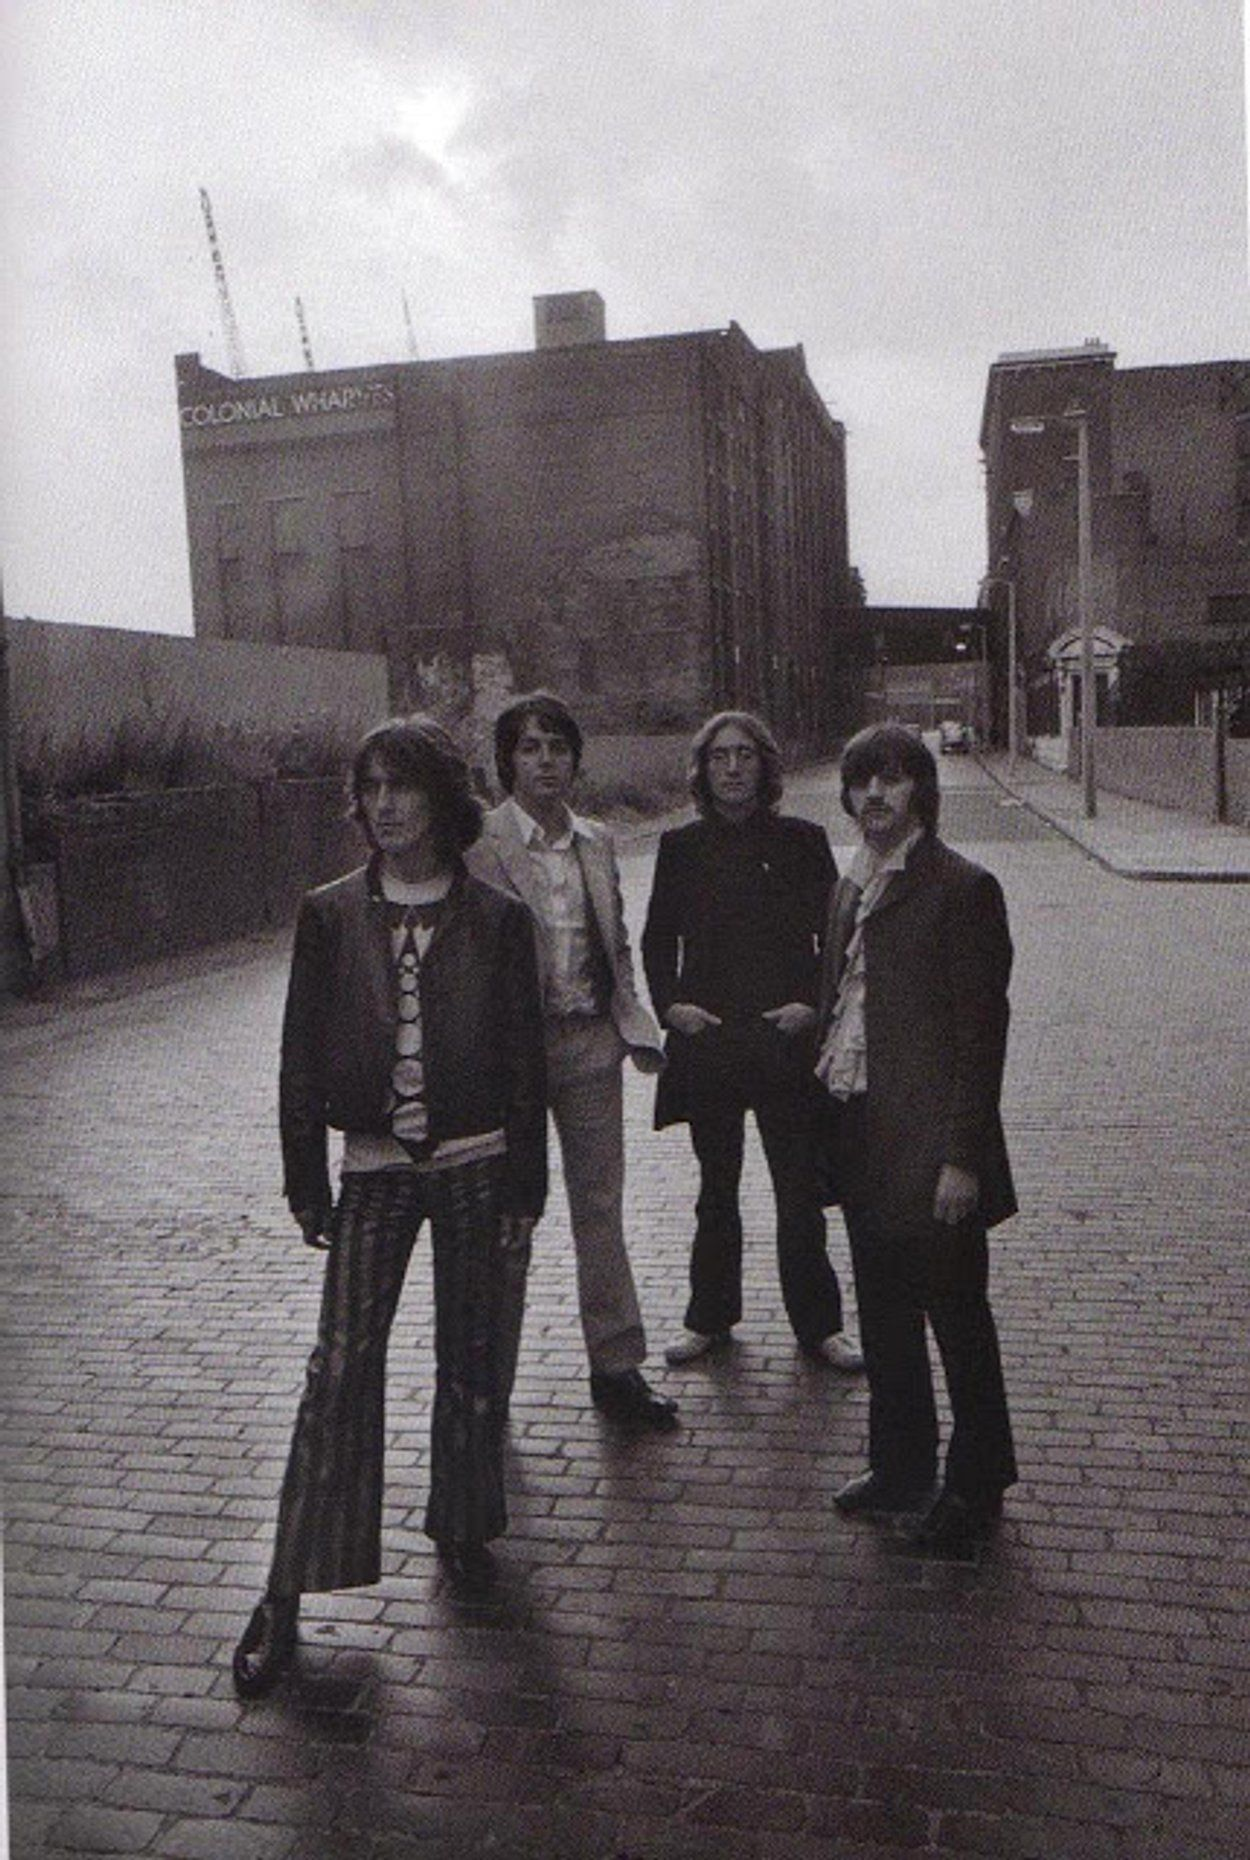 Rare And Interesting Pictures Of The Beatles From The Mad Day Out Photo Session In The Summer Of 1968 Vintage E The Beatles Beatles Pictures Beatles Photos